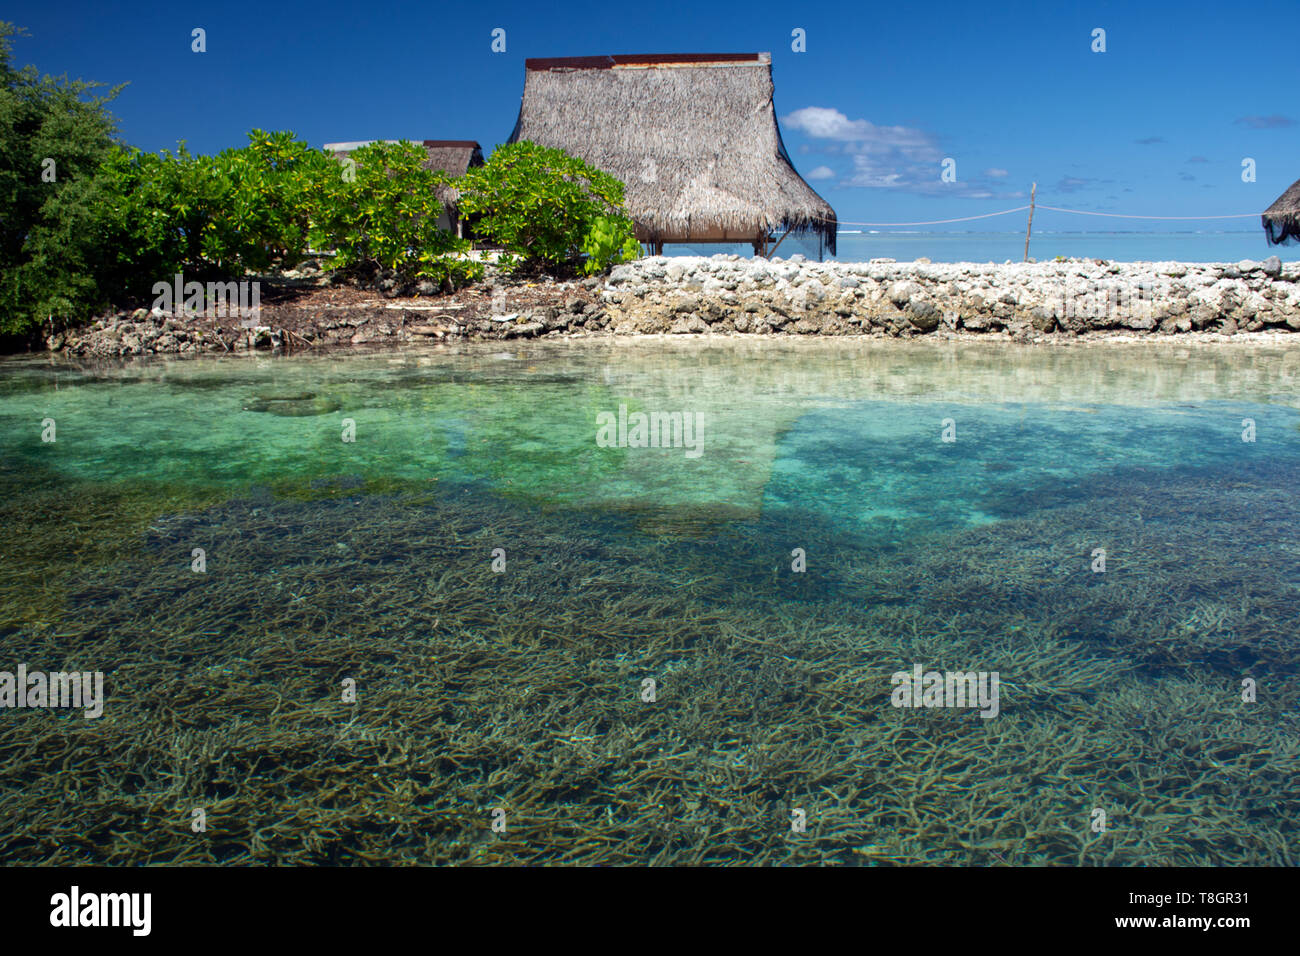 Shallow coral reef, mostly Acropora sp., and typical Micronesian hut in the lagoon of Pohnpei, Federated States of Micronesia - Stock Image